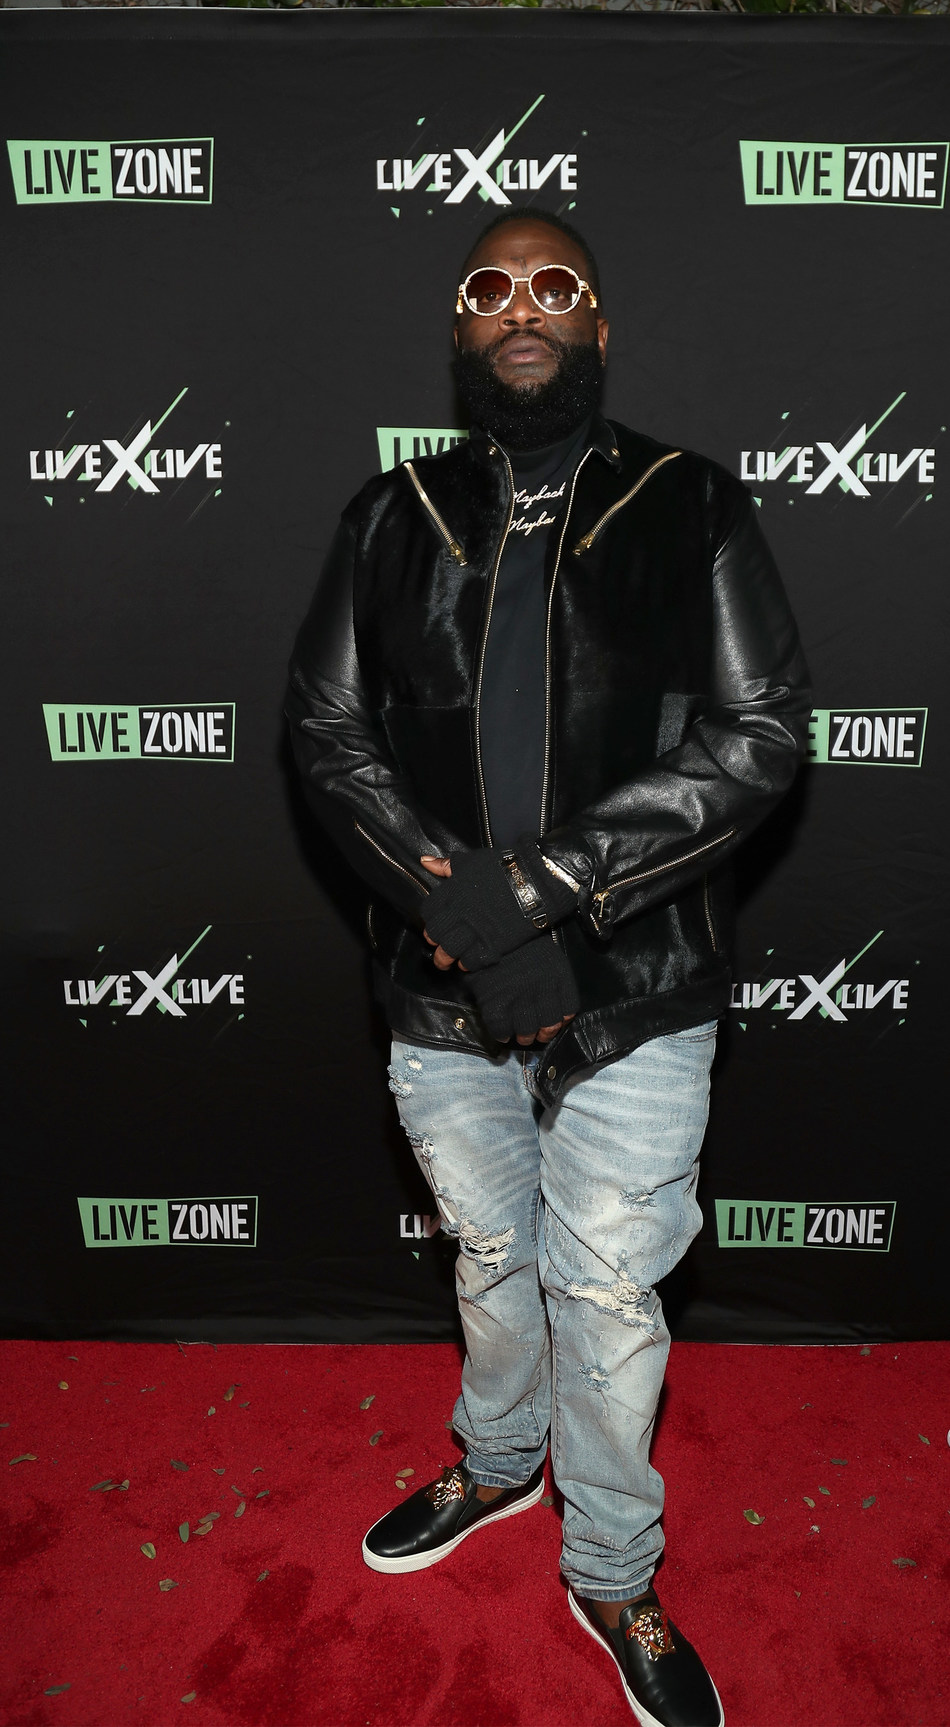 """Rick Ross arrives at the Peppermint Club in West Hollywood, California for """"LiveXLive Presents"""" event on February 10, 2019."""